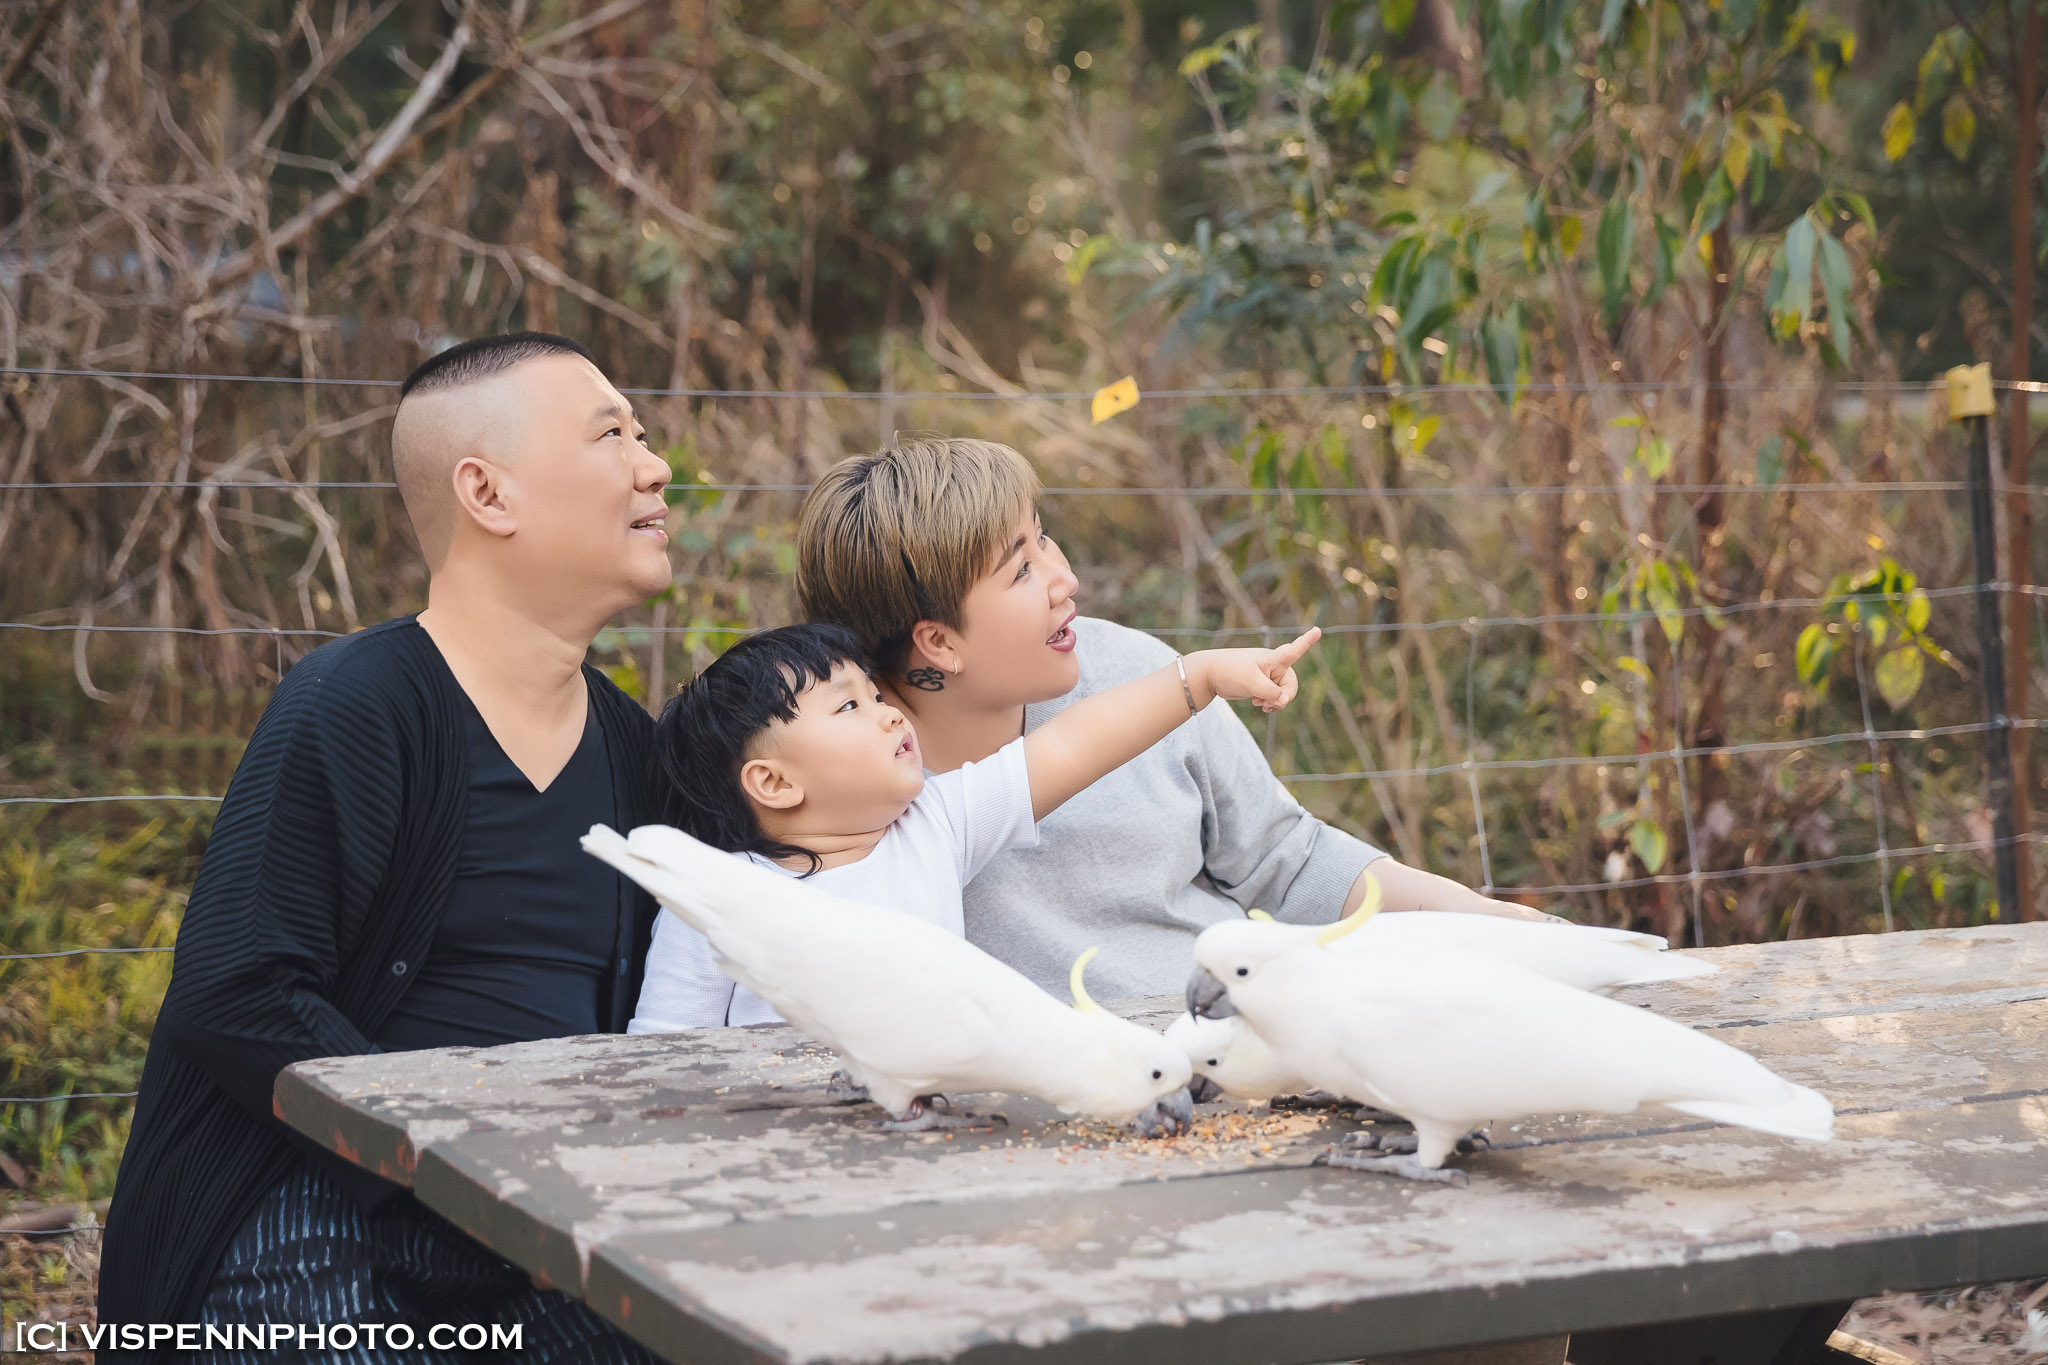 Melbourne Newborn Baby Family Photo BaoBao VISPENN 墨尔本 儿童 宝宝 百天照 满月照 孕妇照 全家福 KIDS VISPENN P 7577